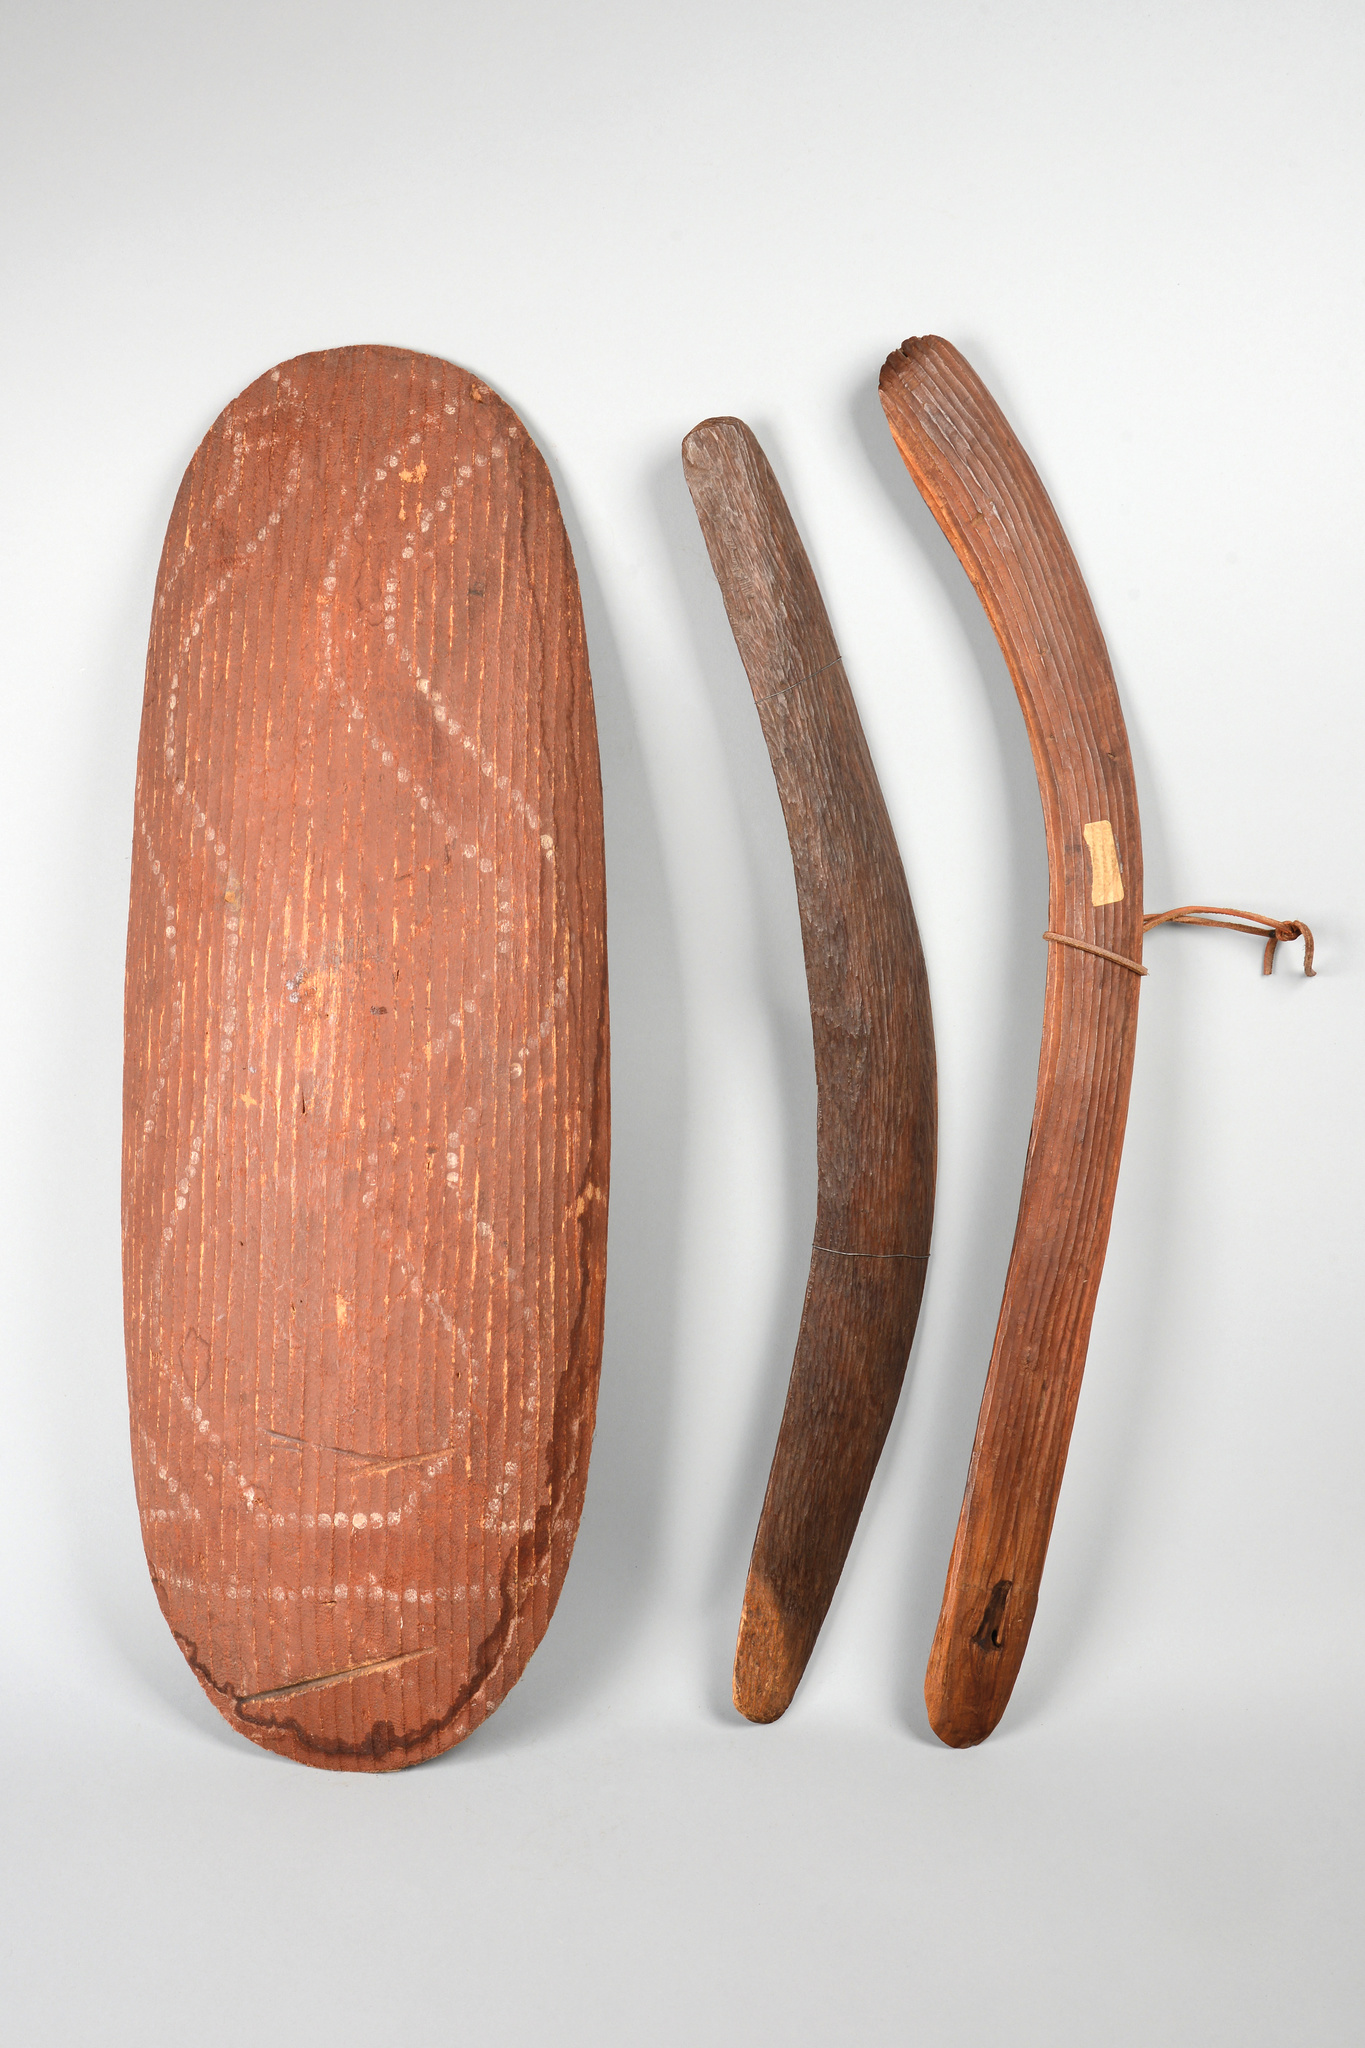 Shield and two boomerangs